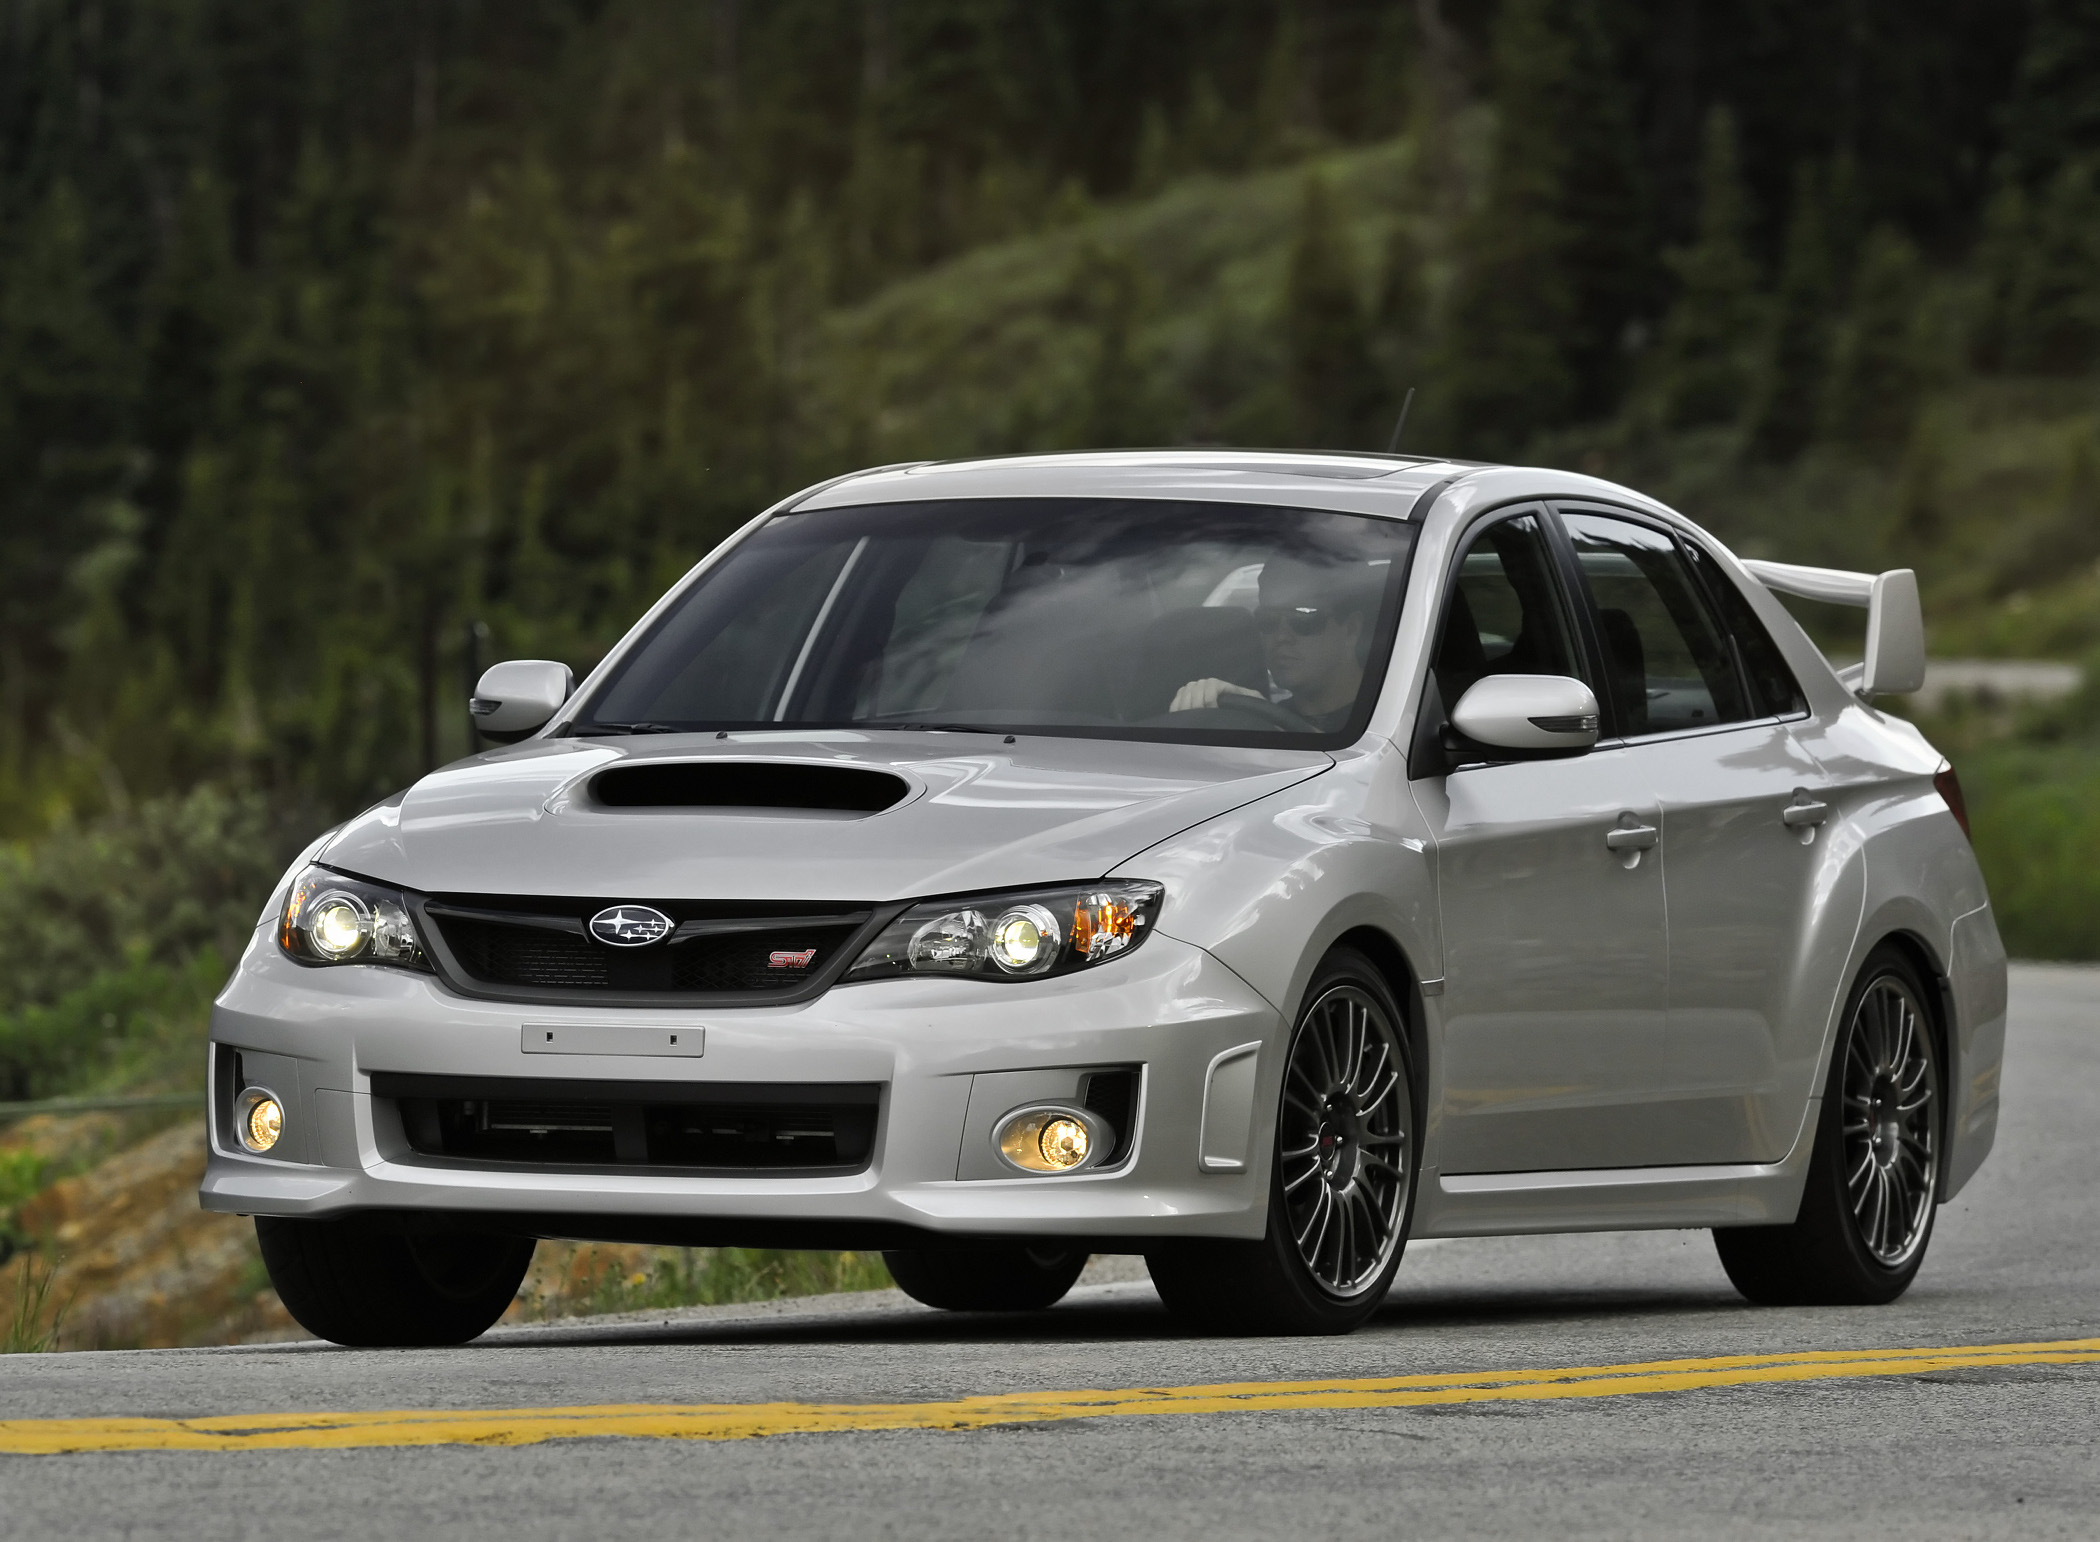 2012 Subaru Wrx Sti Review By Carey Russ